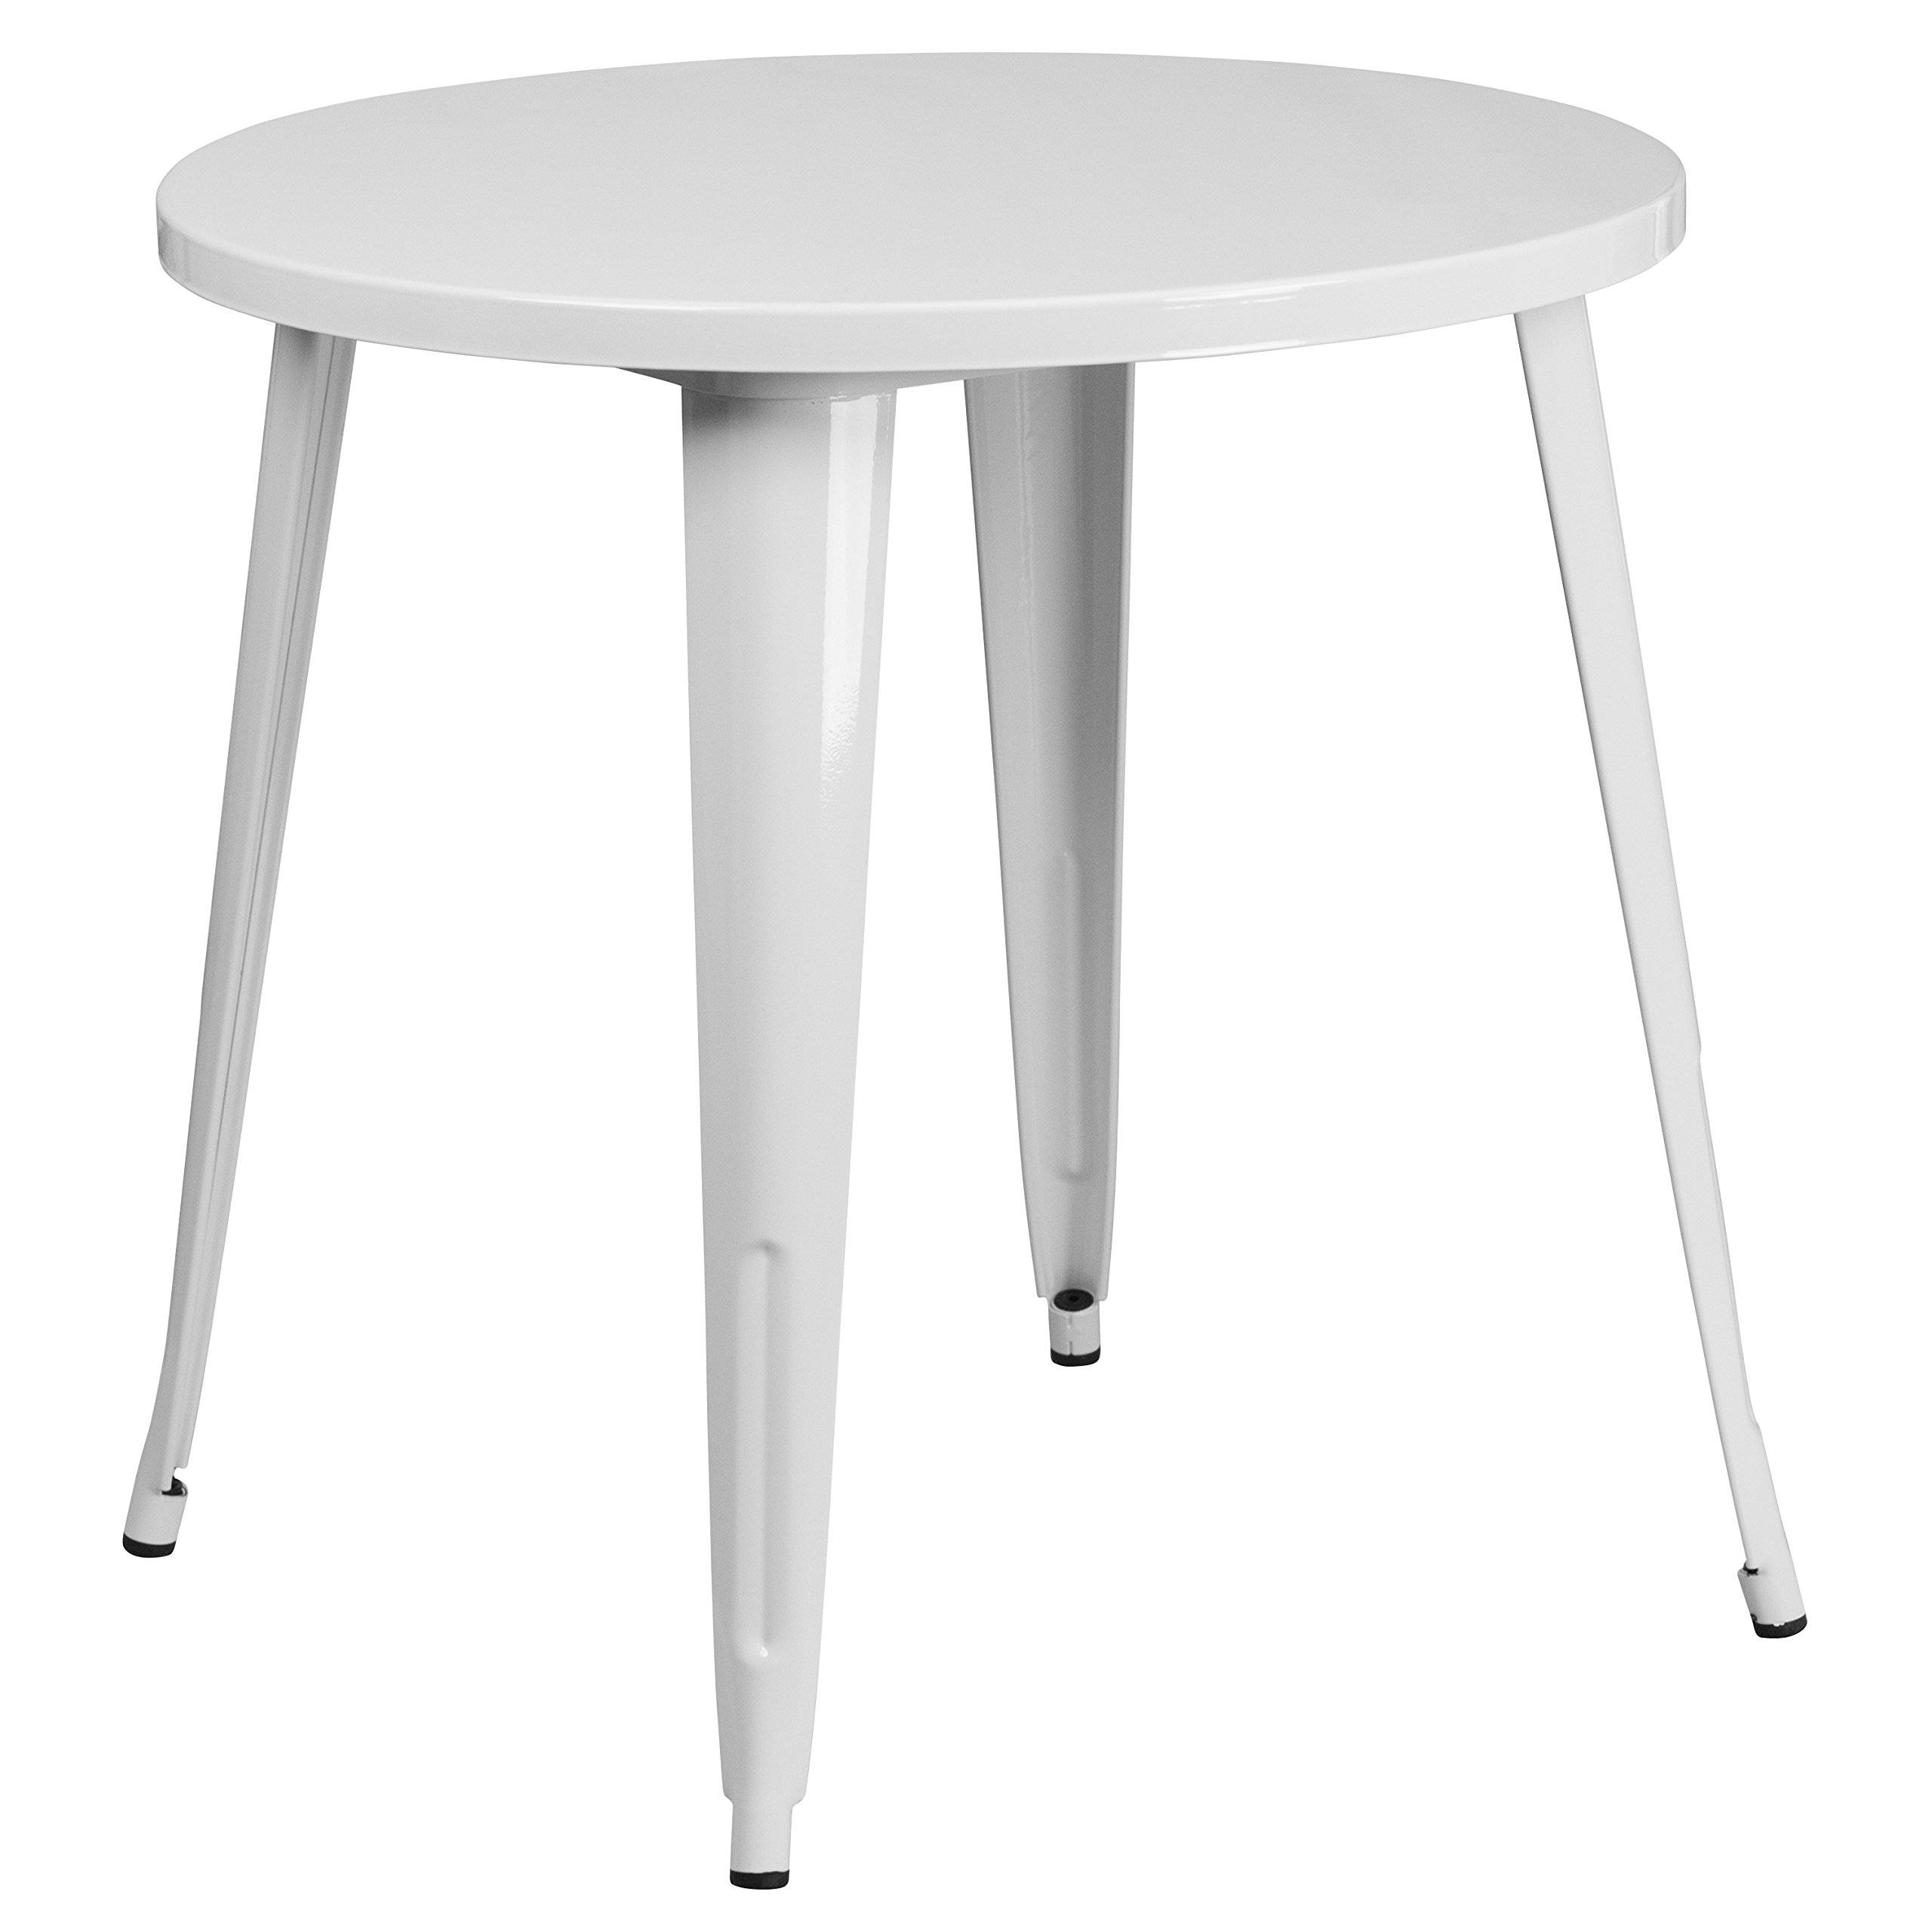 Flash Furniture 30'' Round White Metal Indoor-Outdoor Table - CH-51090-29-WH-GG by Flash Furniture